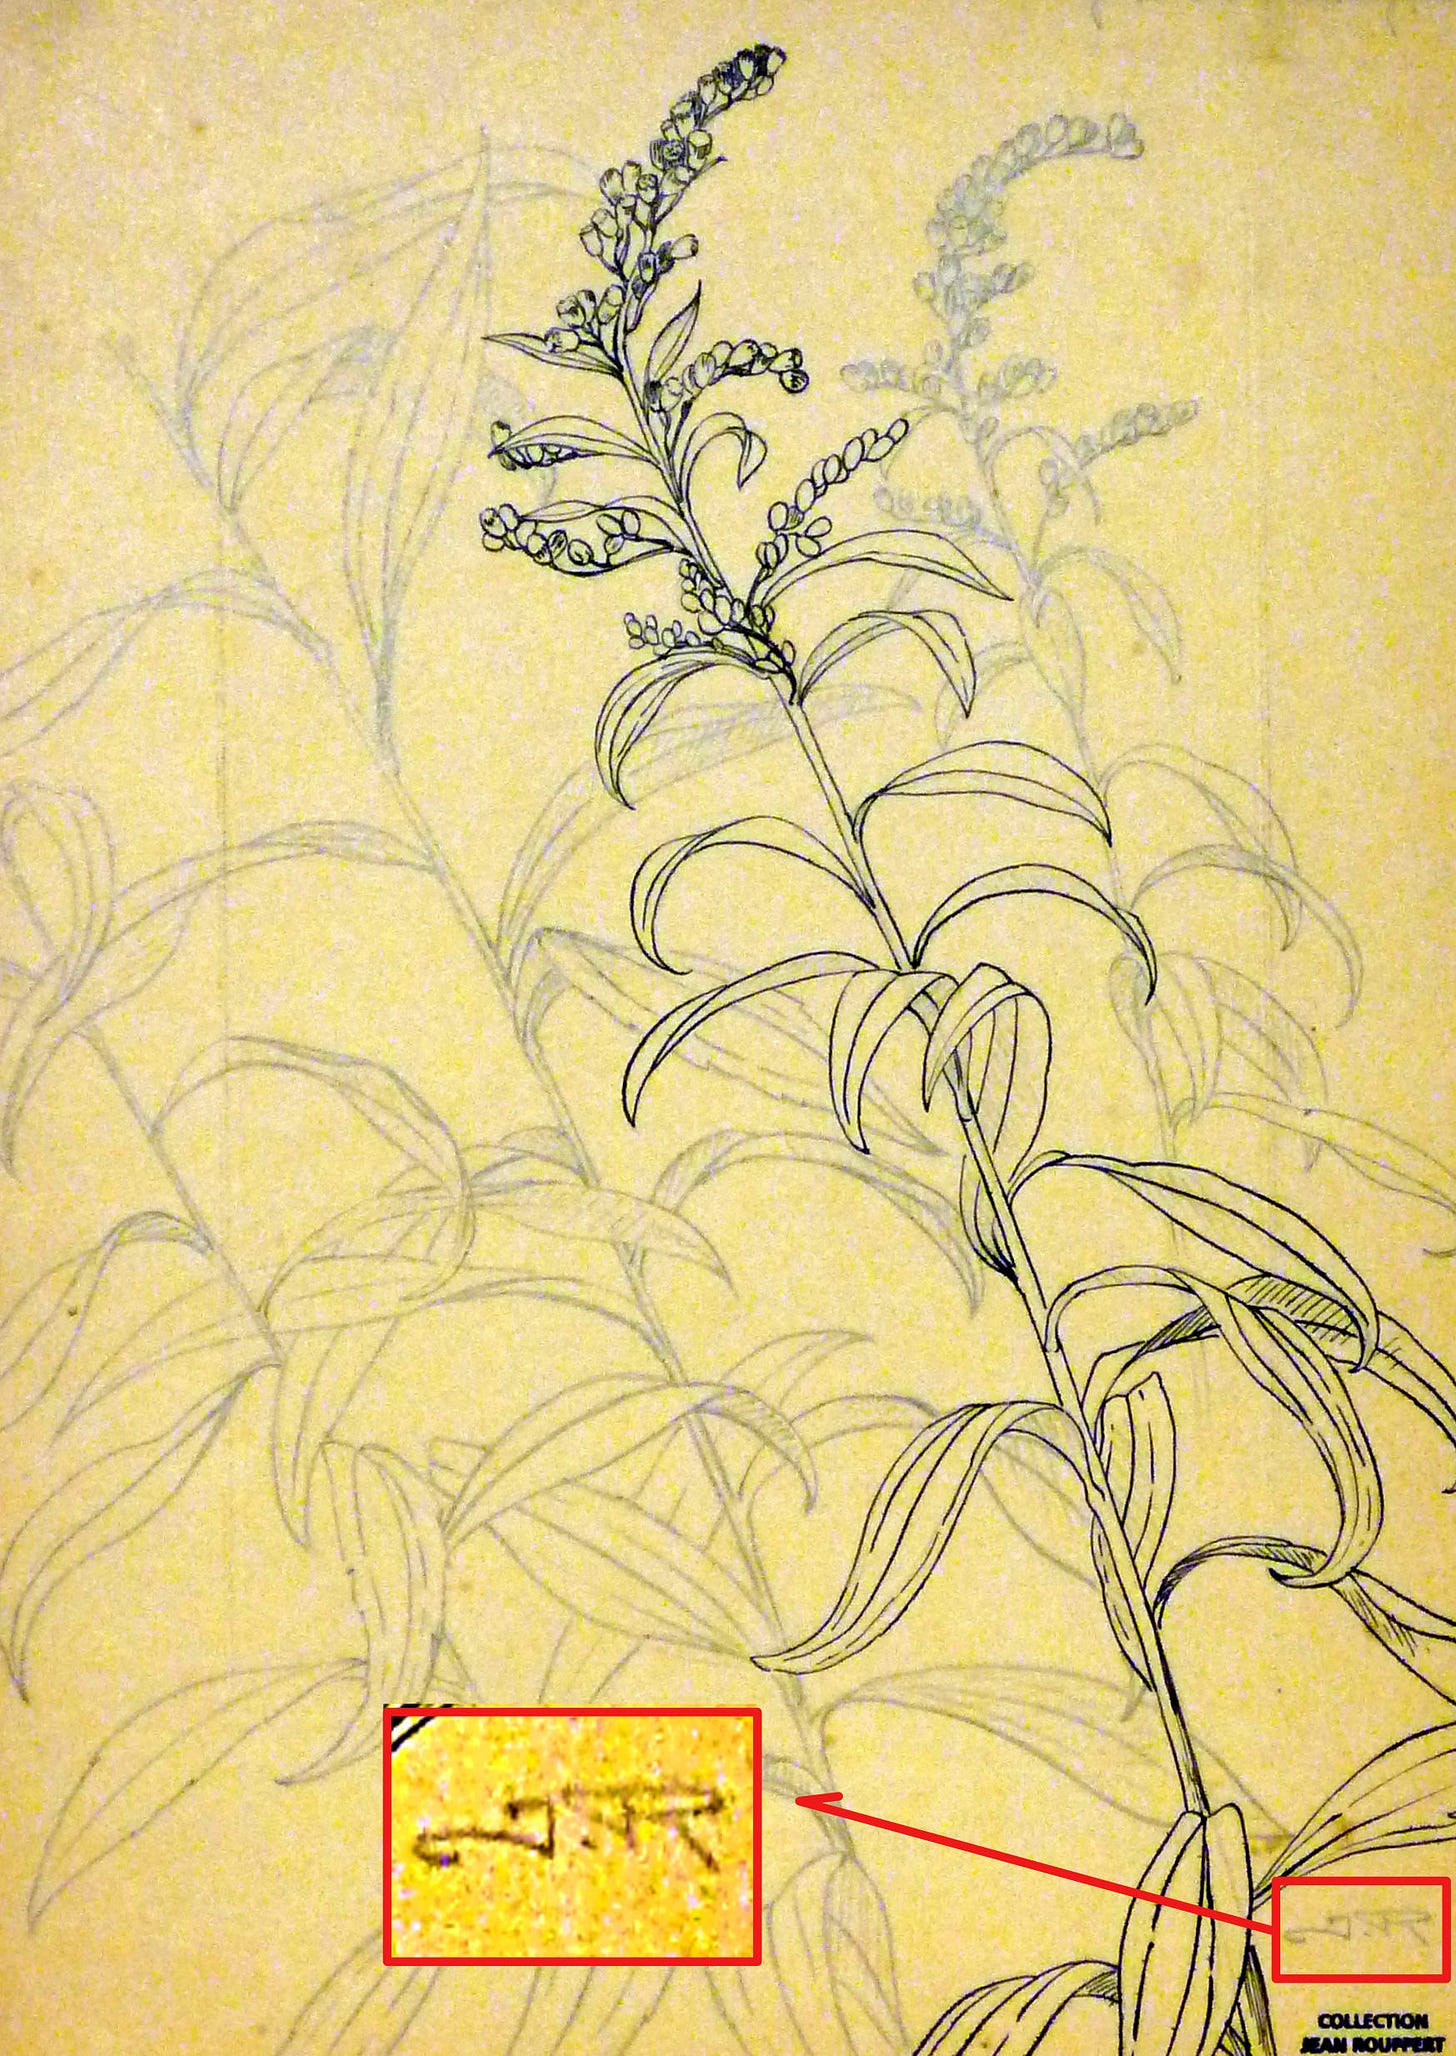 Jean Rouppert, Gerbe d'or, floral studies, pencil and ink on paper, signed, undated (private collection).